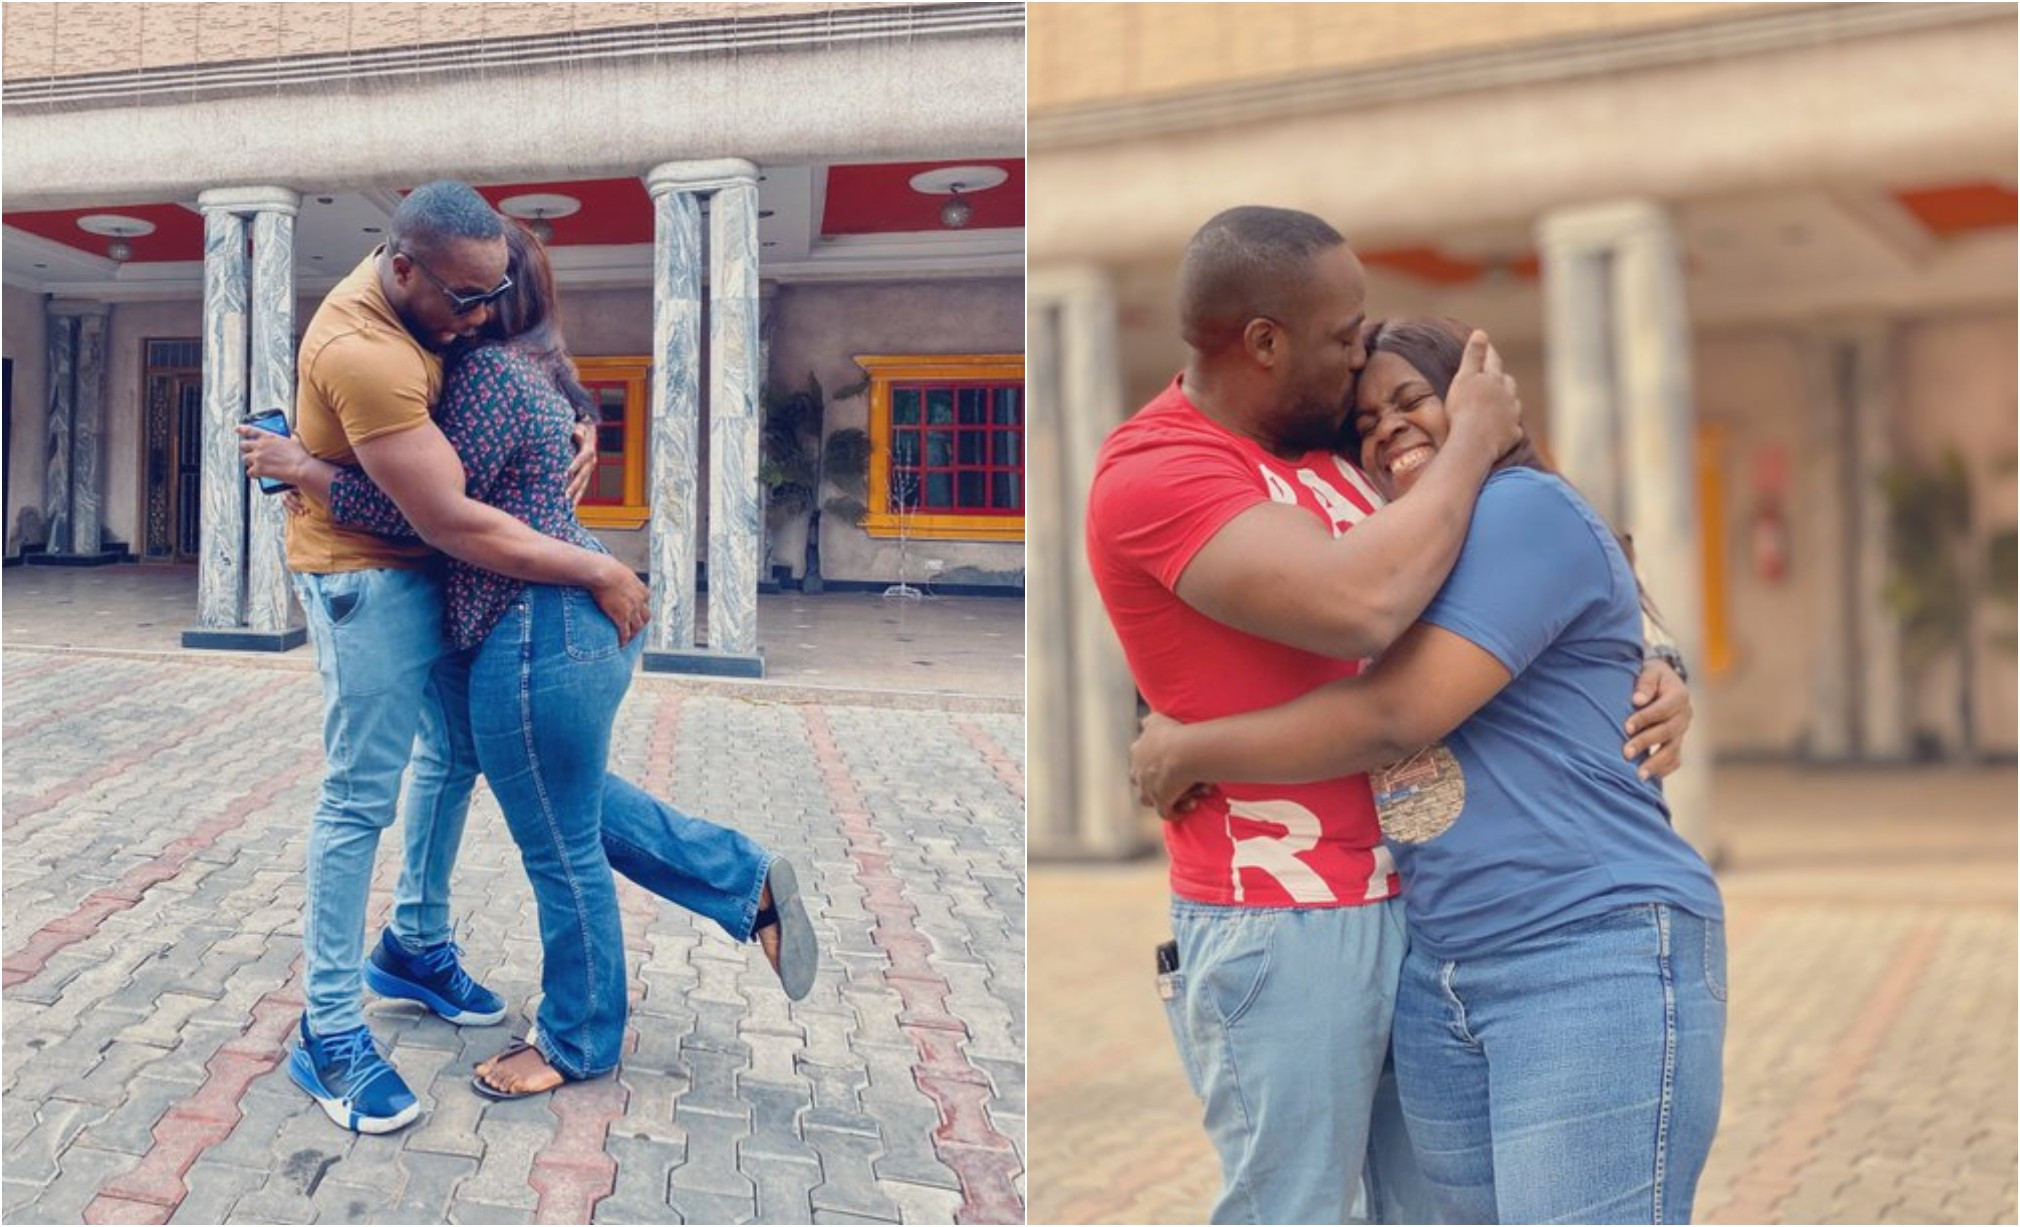 Nigerians react to photo showing a man hugging his sister after reuniting with her after 3 years